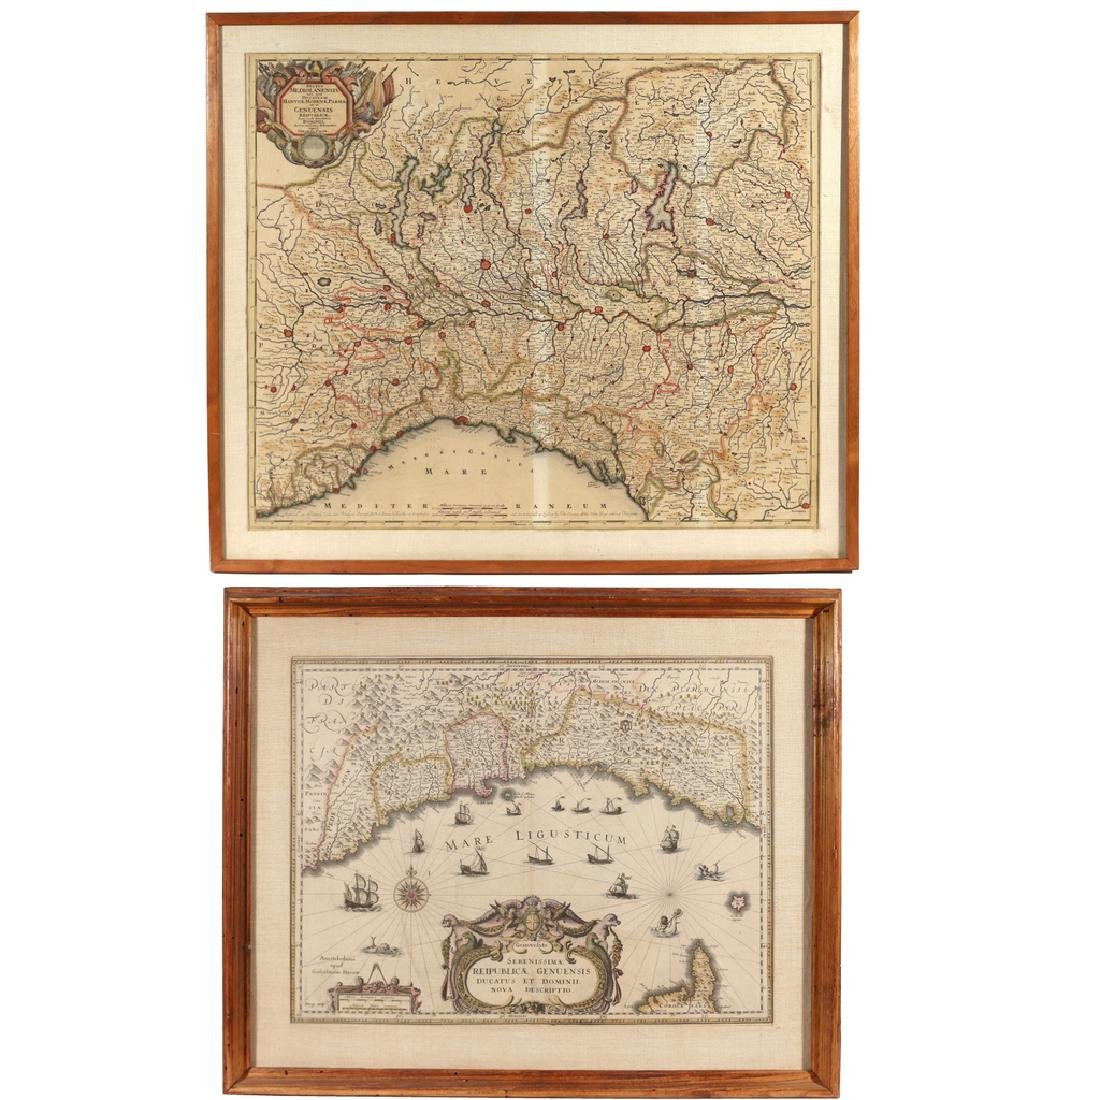 (2pc) HAND-COLORED ENGRAVED MAPS OF ITALY